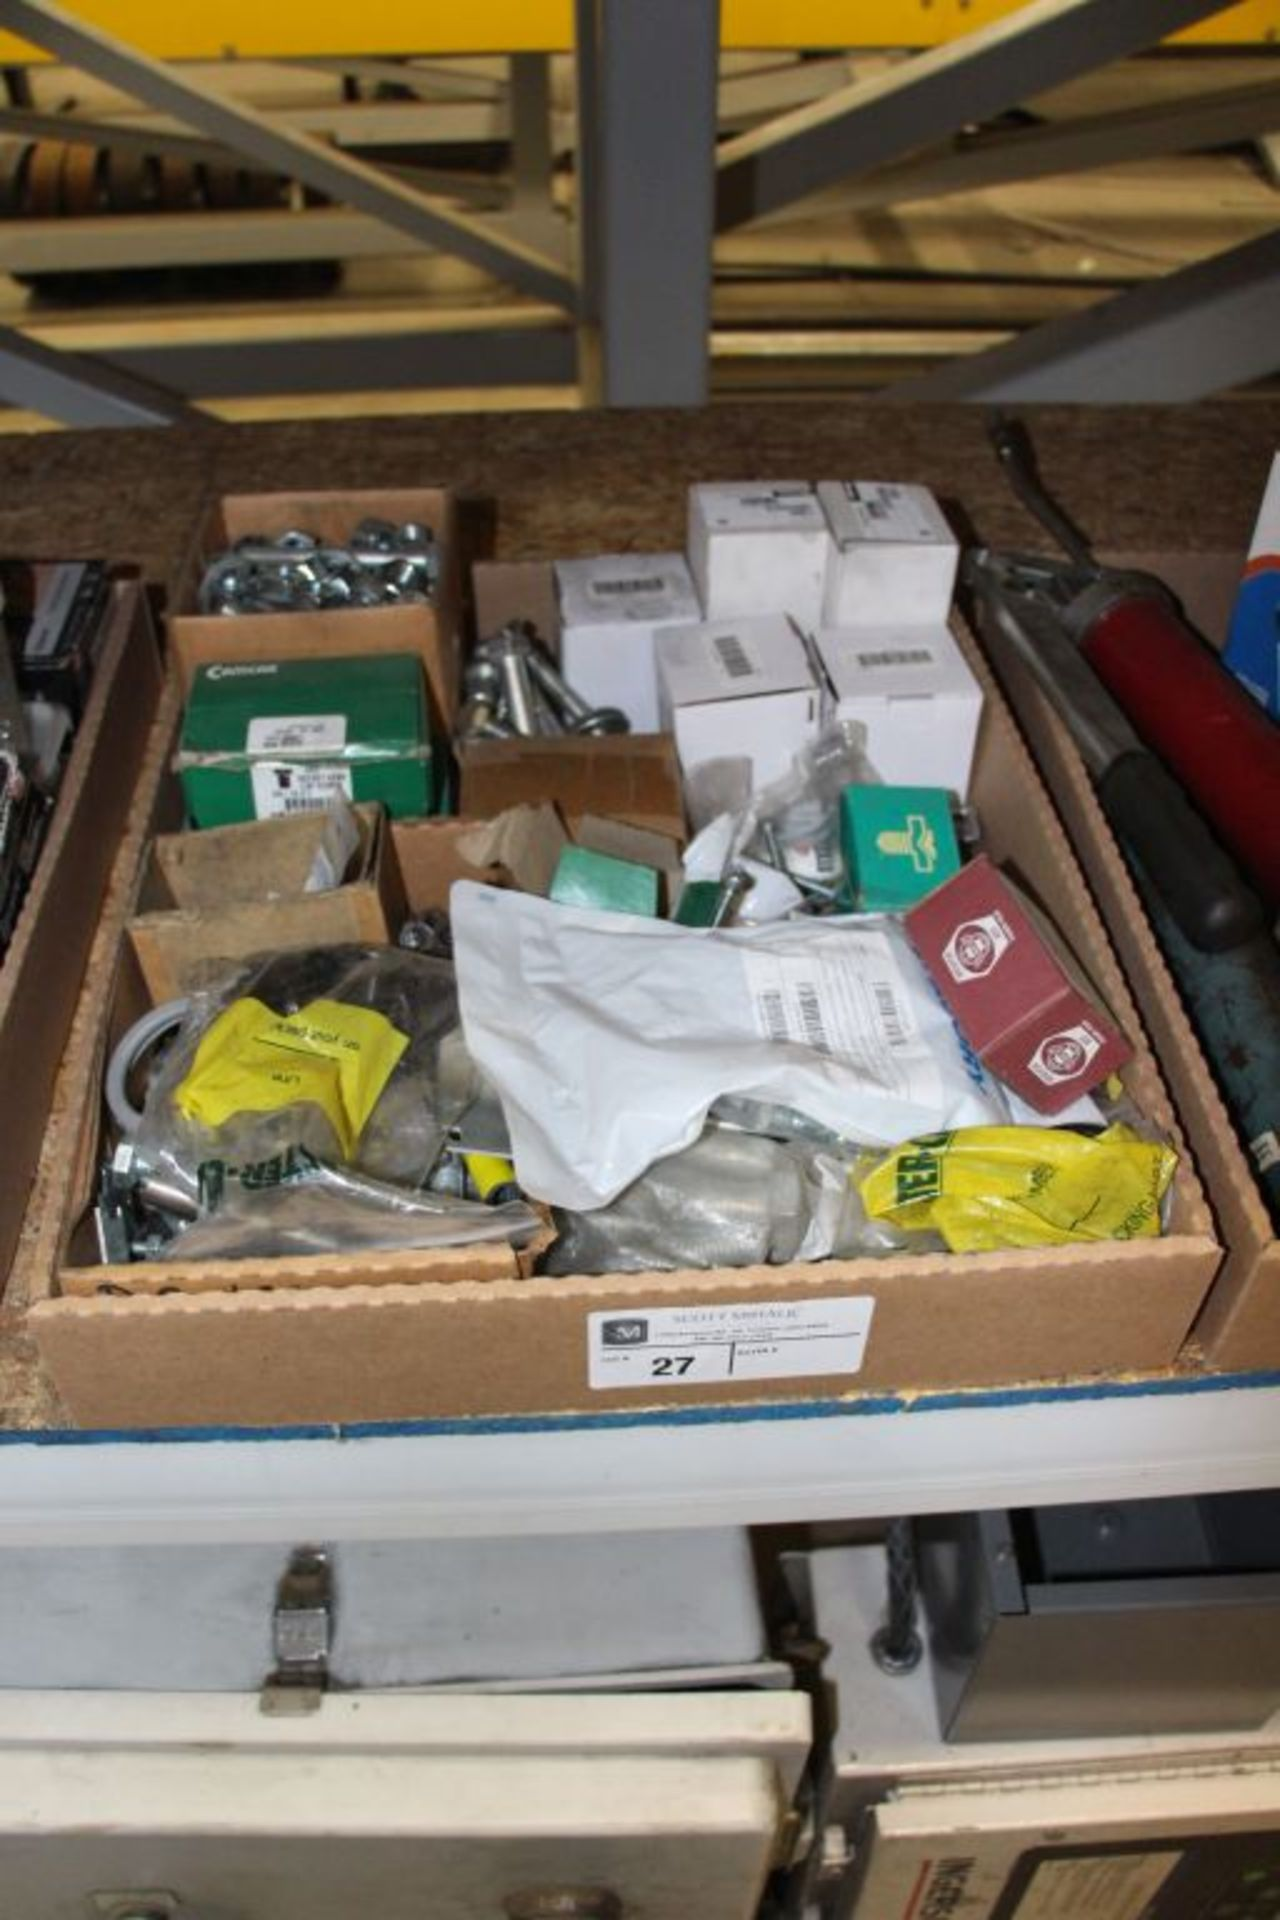 Lot 27 - assortment of hardware, bolts, nuts and misc.